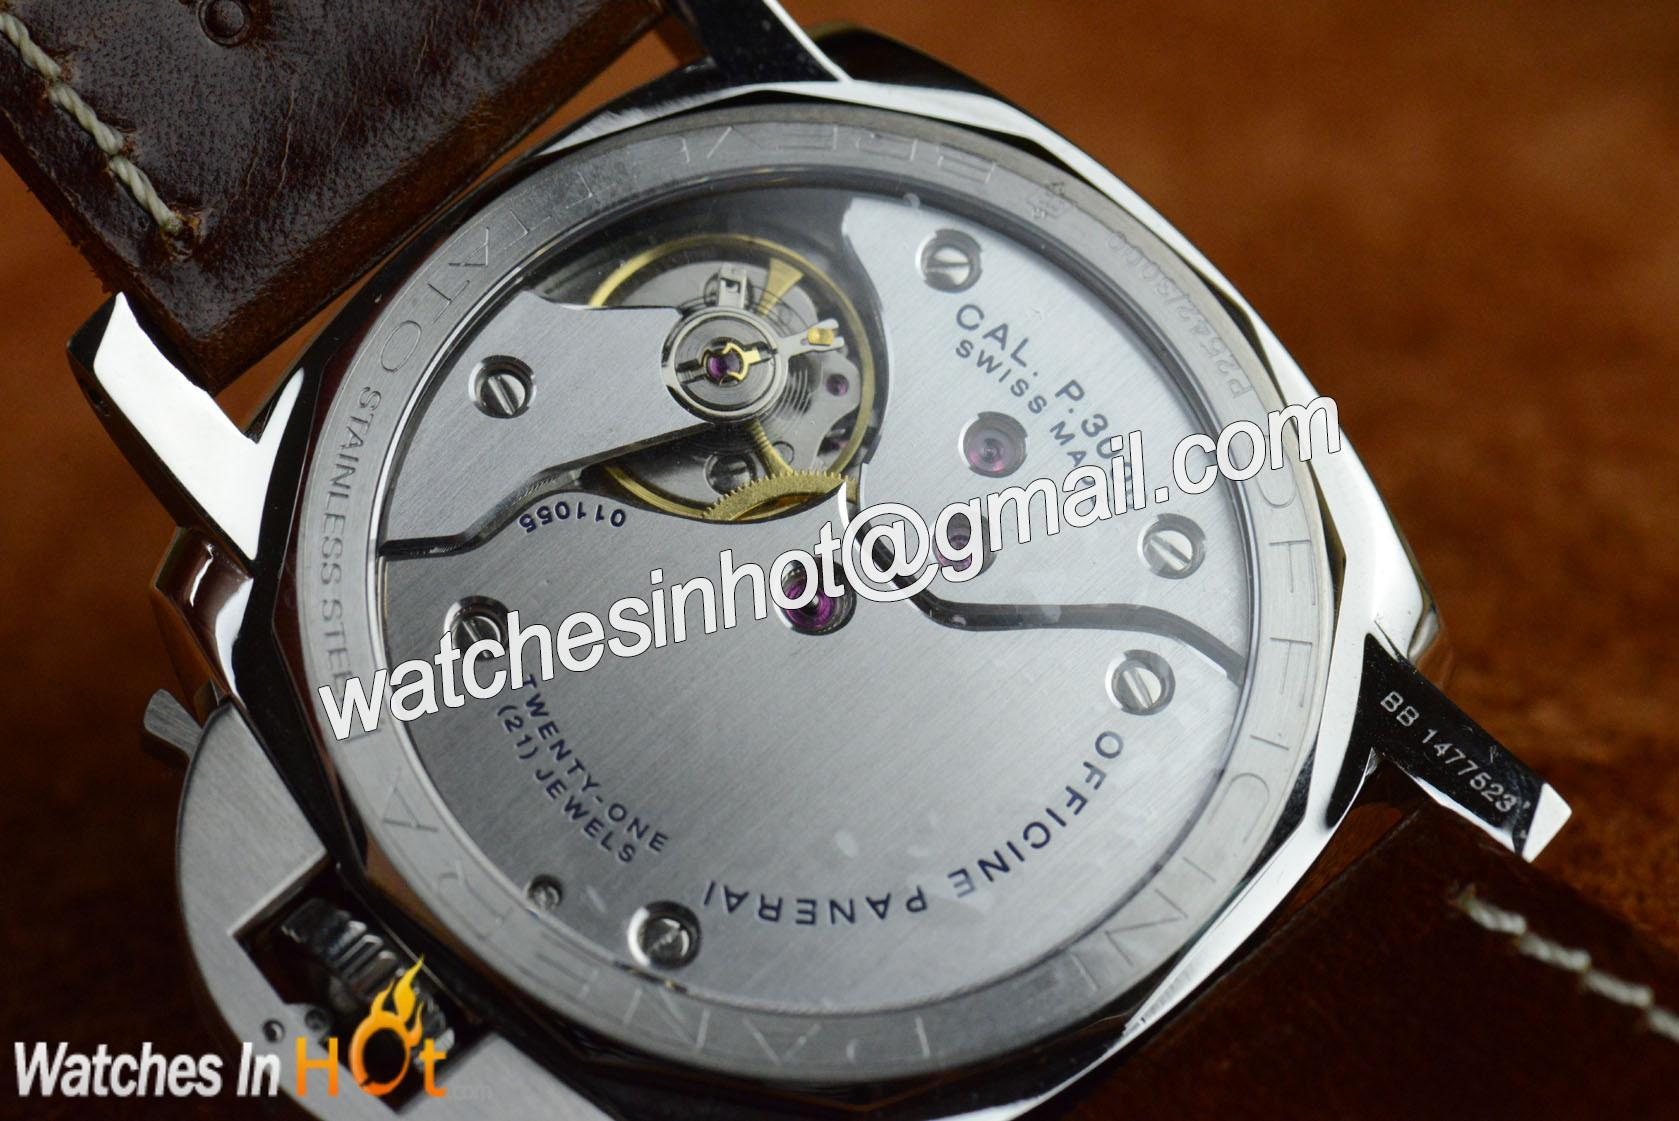 Panerai pam 390 luminor base replica watch review special edition replica watches reviews for Replica watches